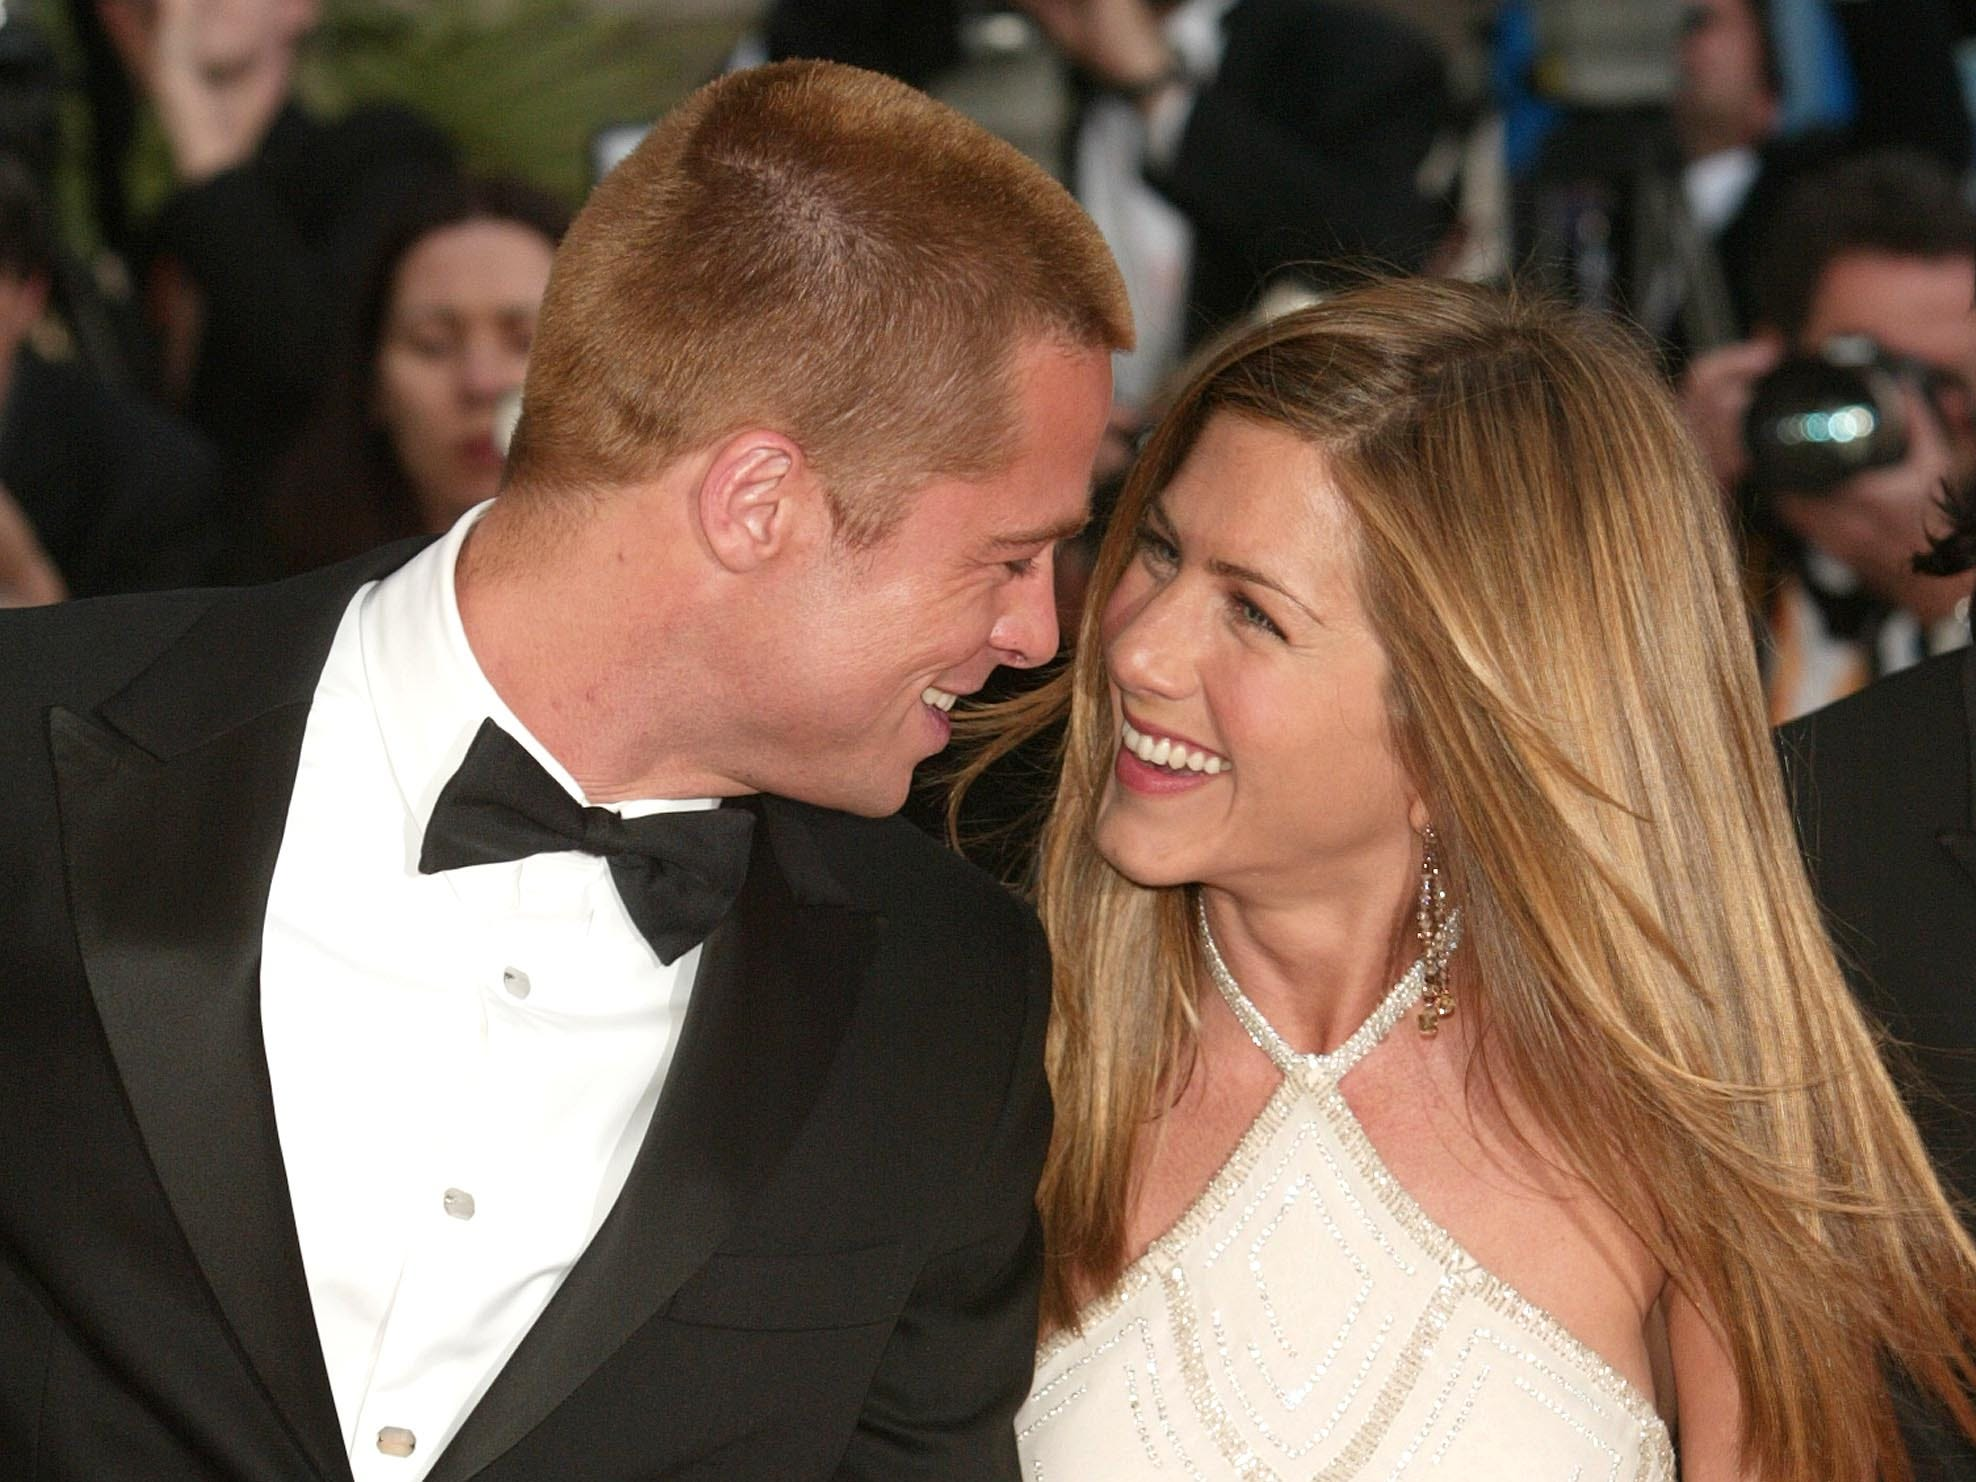 """Pitt and Aniston's relationship still looked to be on solid ground at the 2004 Cannes Film Festival premiere of his swords-and-sandals film """"Troy,"""" where they showed visible affection for each other."""